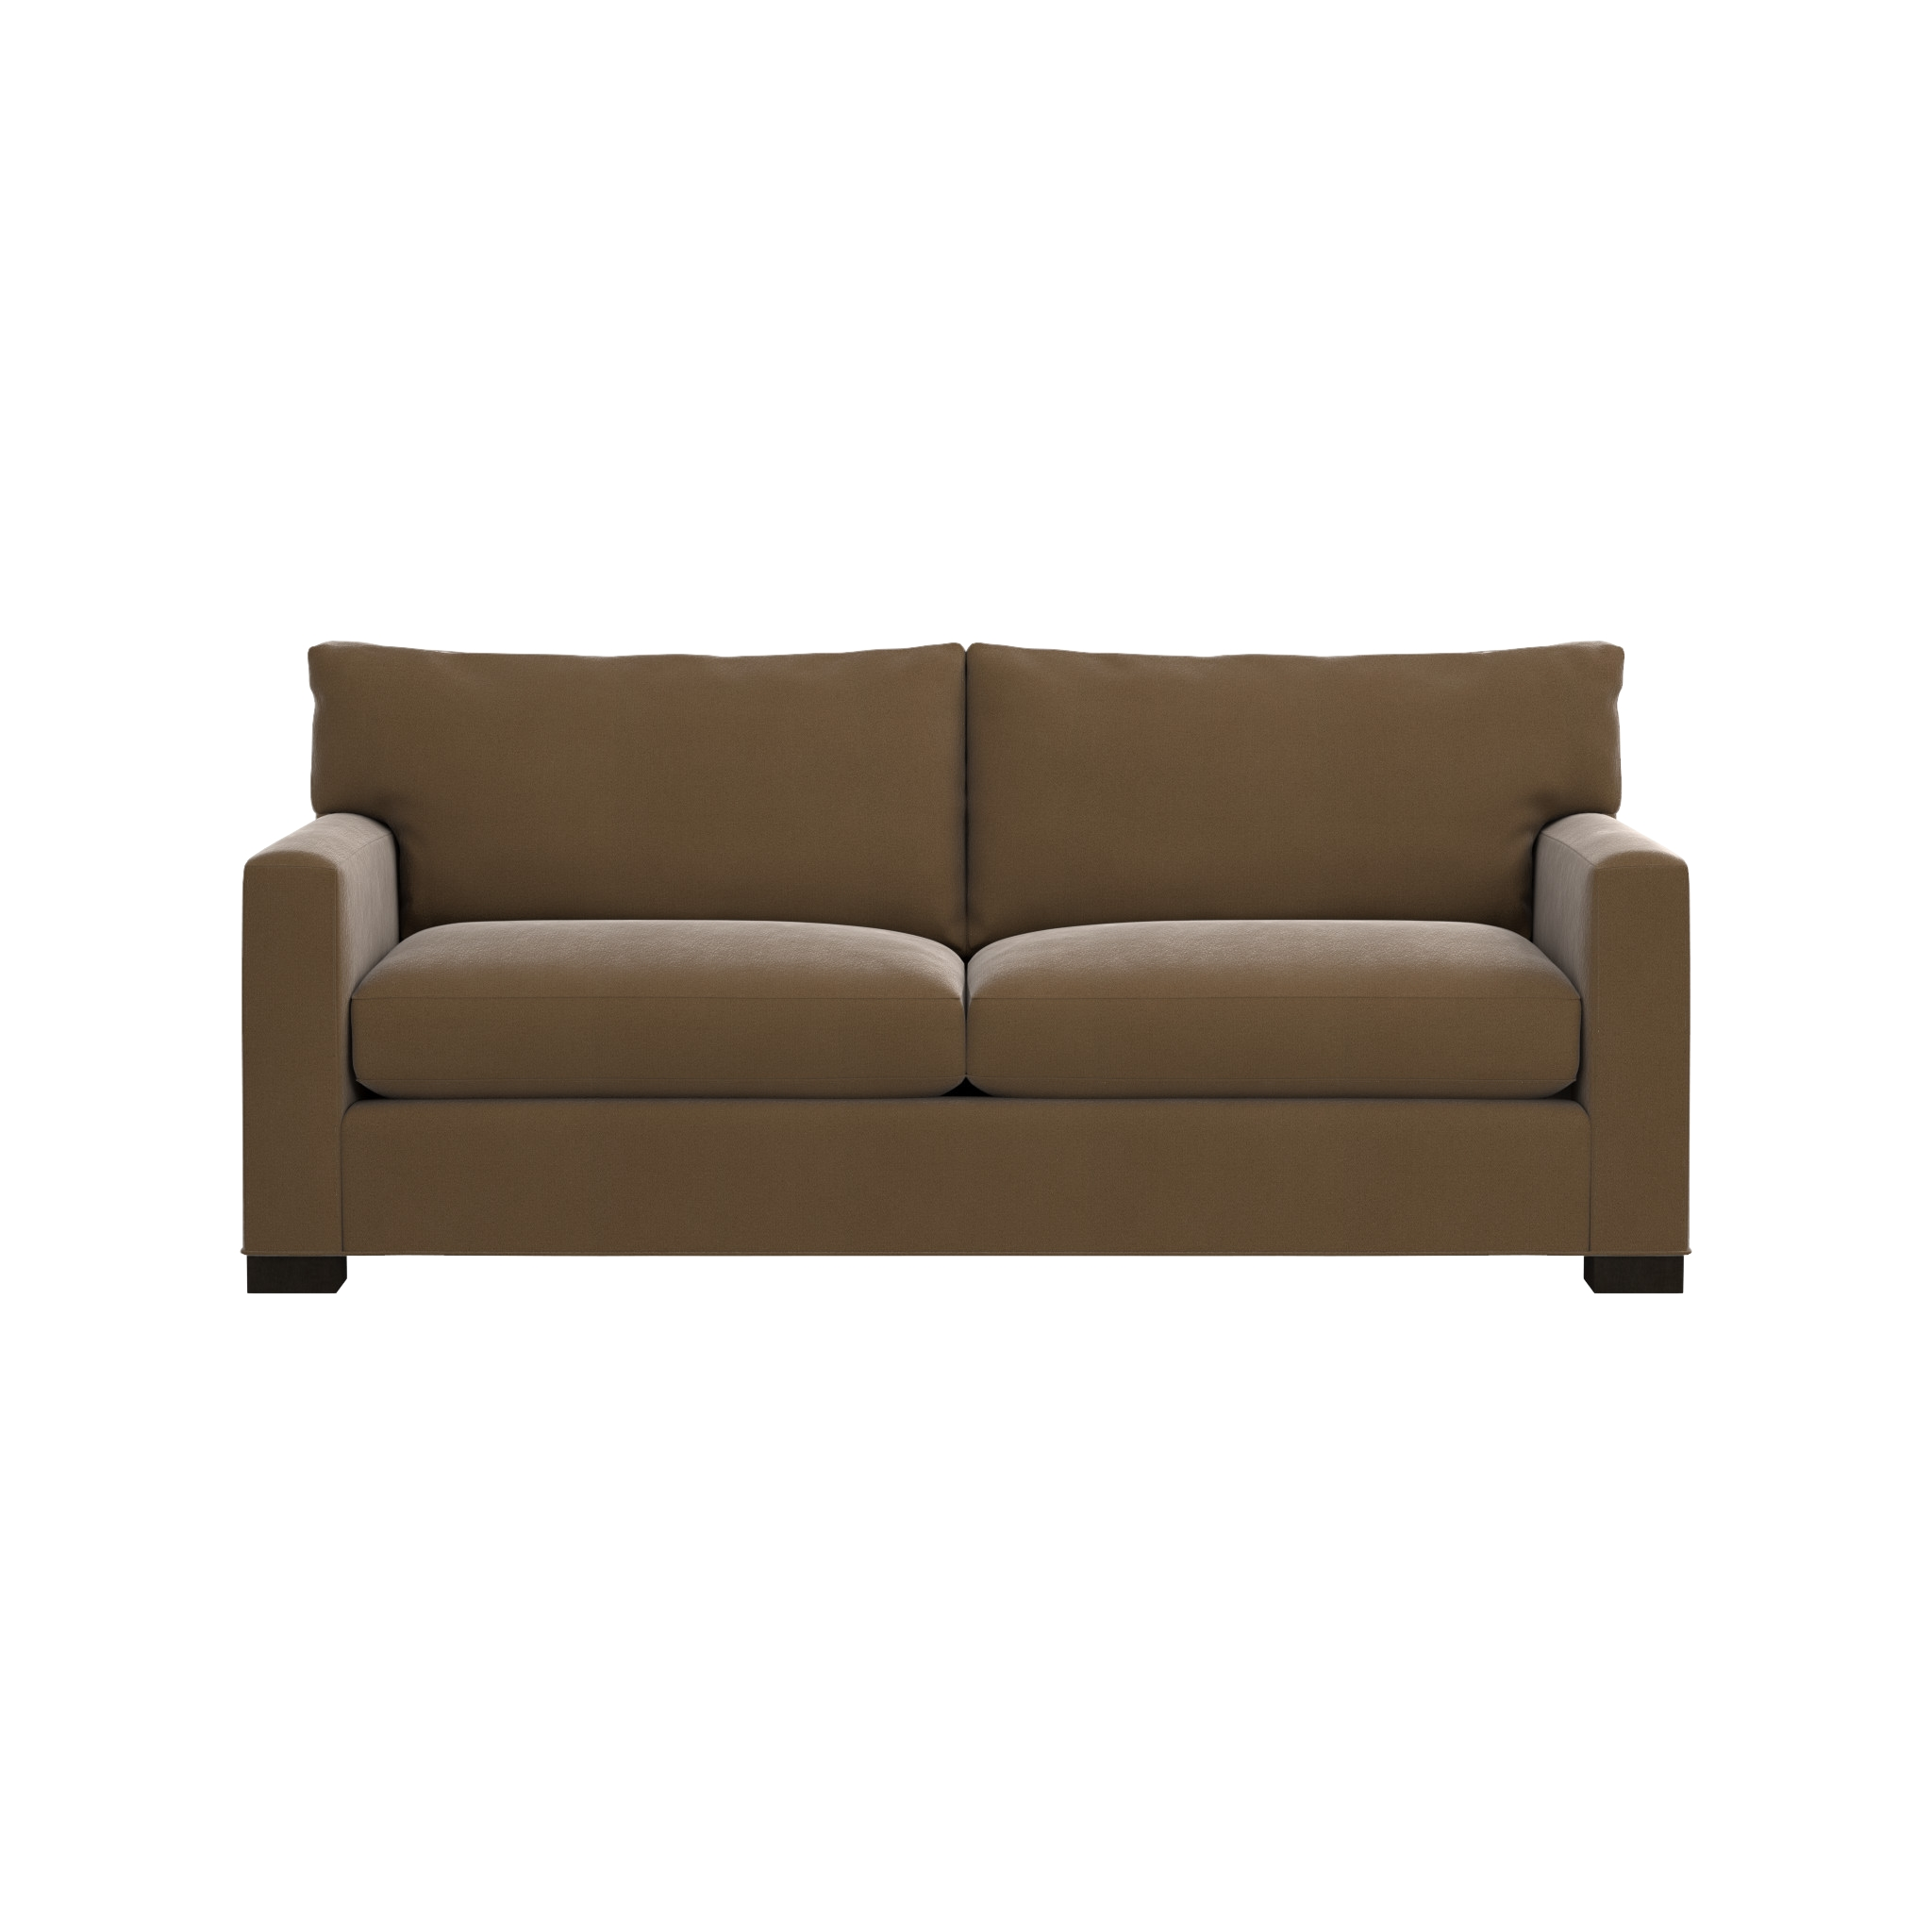 Axis Ii 2 Seater Brown Microfiber Sofa | Crate And Barrel Regarding Sectional Crate And Barrel (Photo 20 of 20)